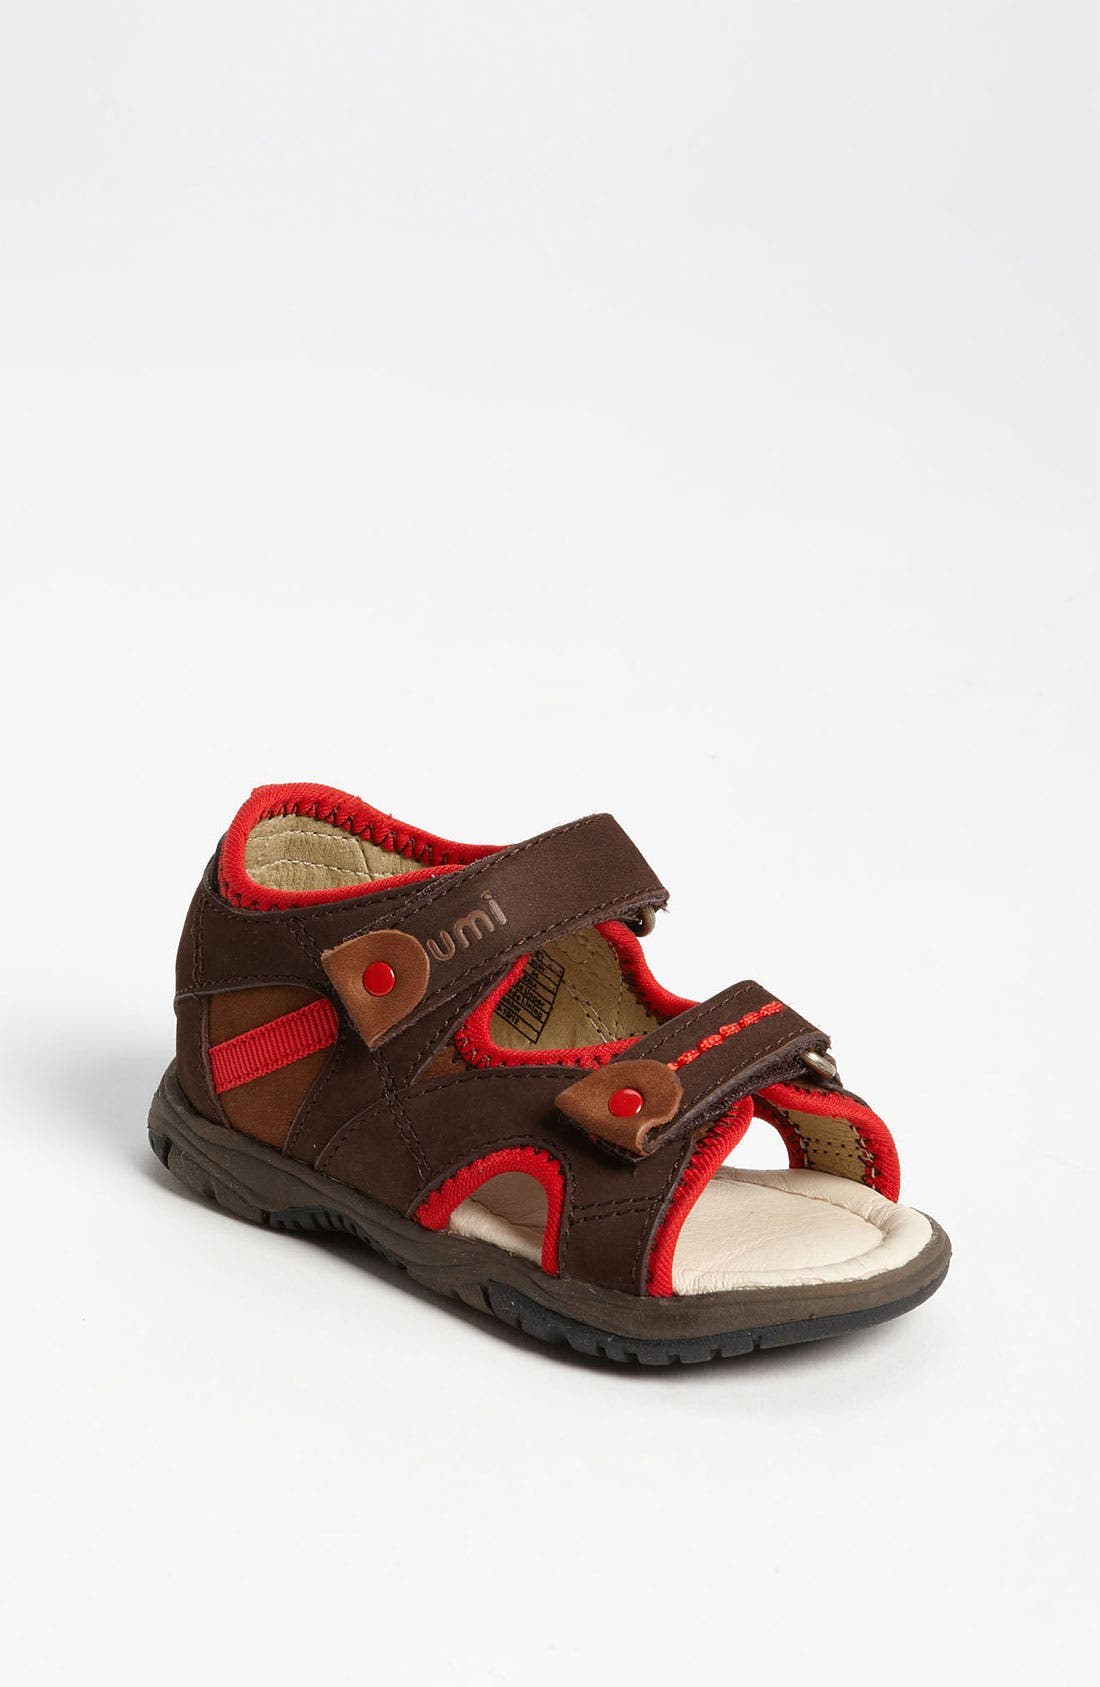 Main Image - Umi 'Benet' Sandal (Walker & Toddler)